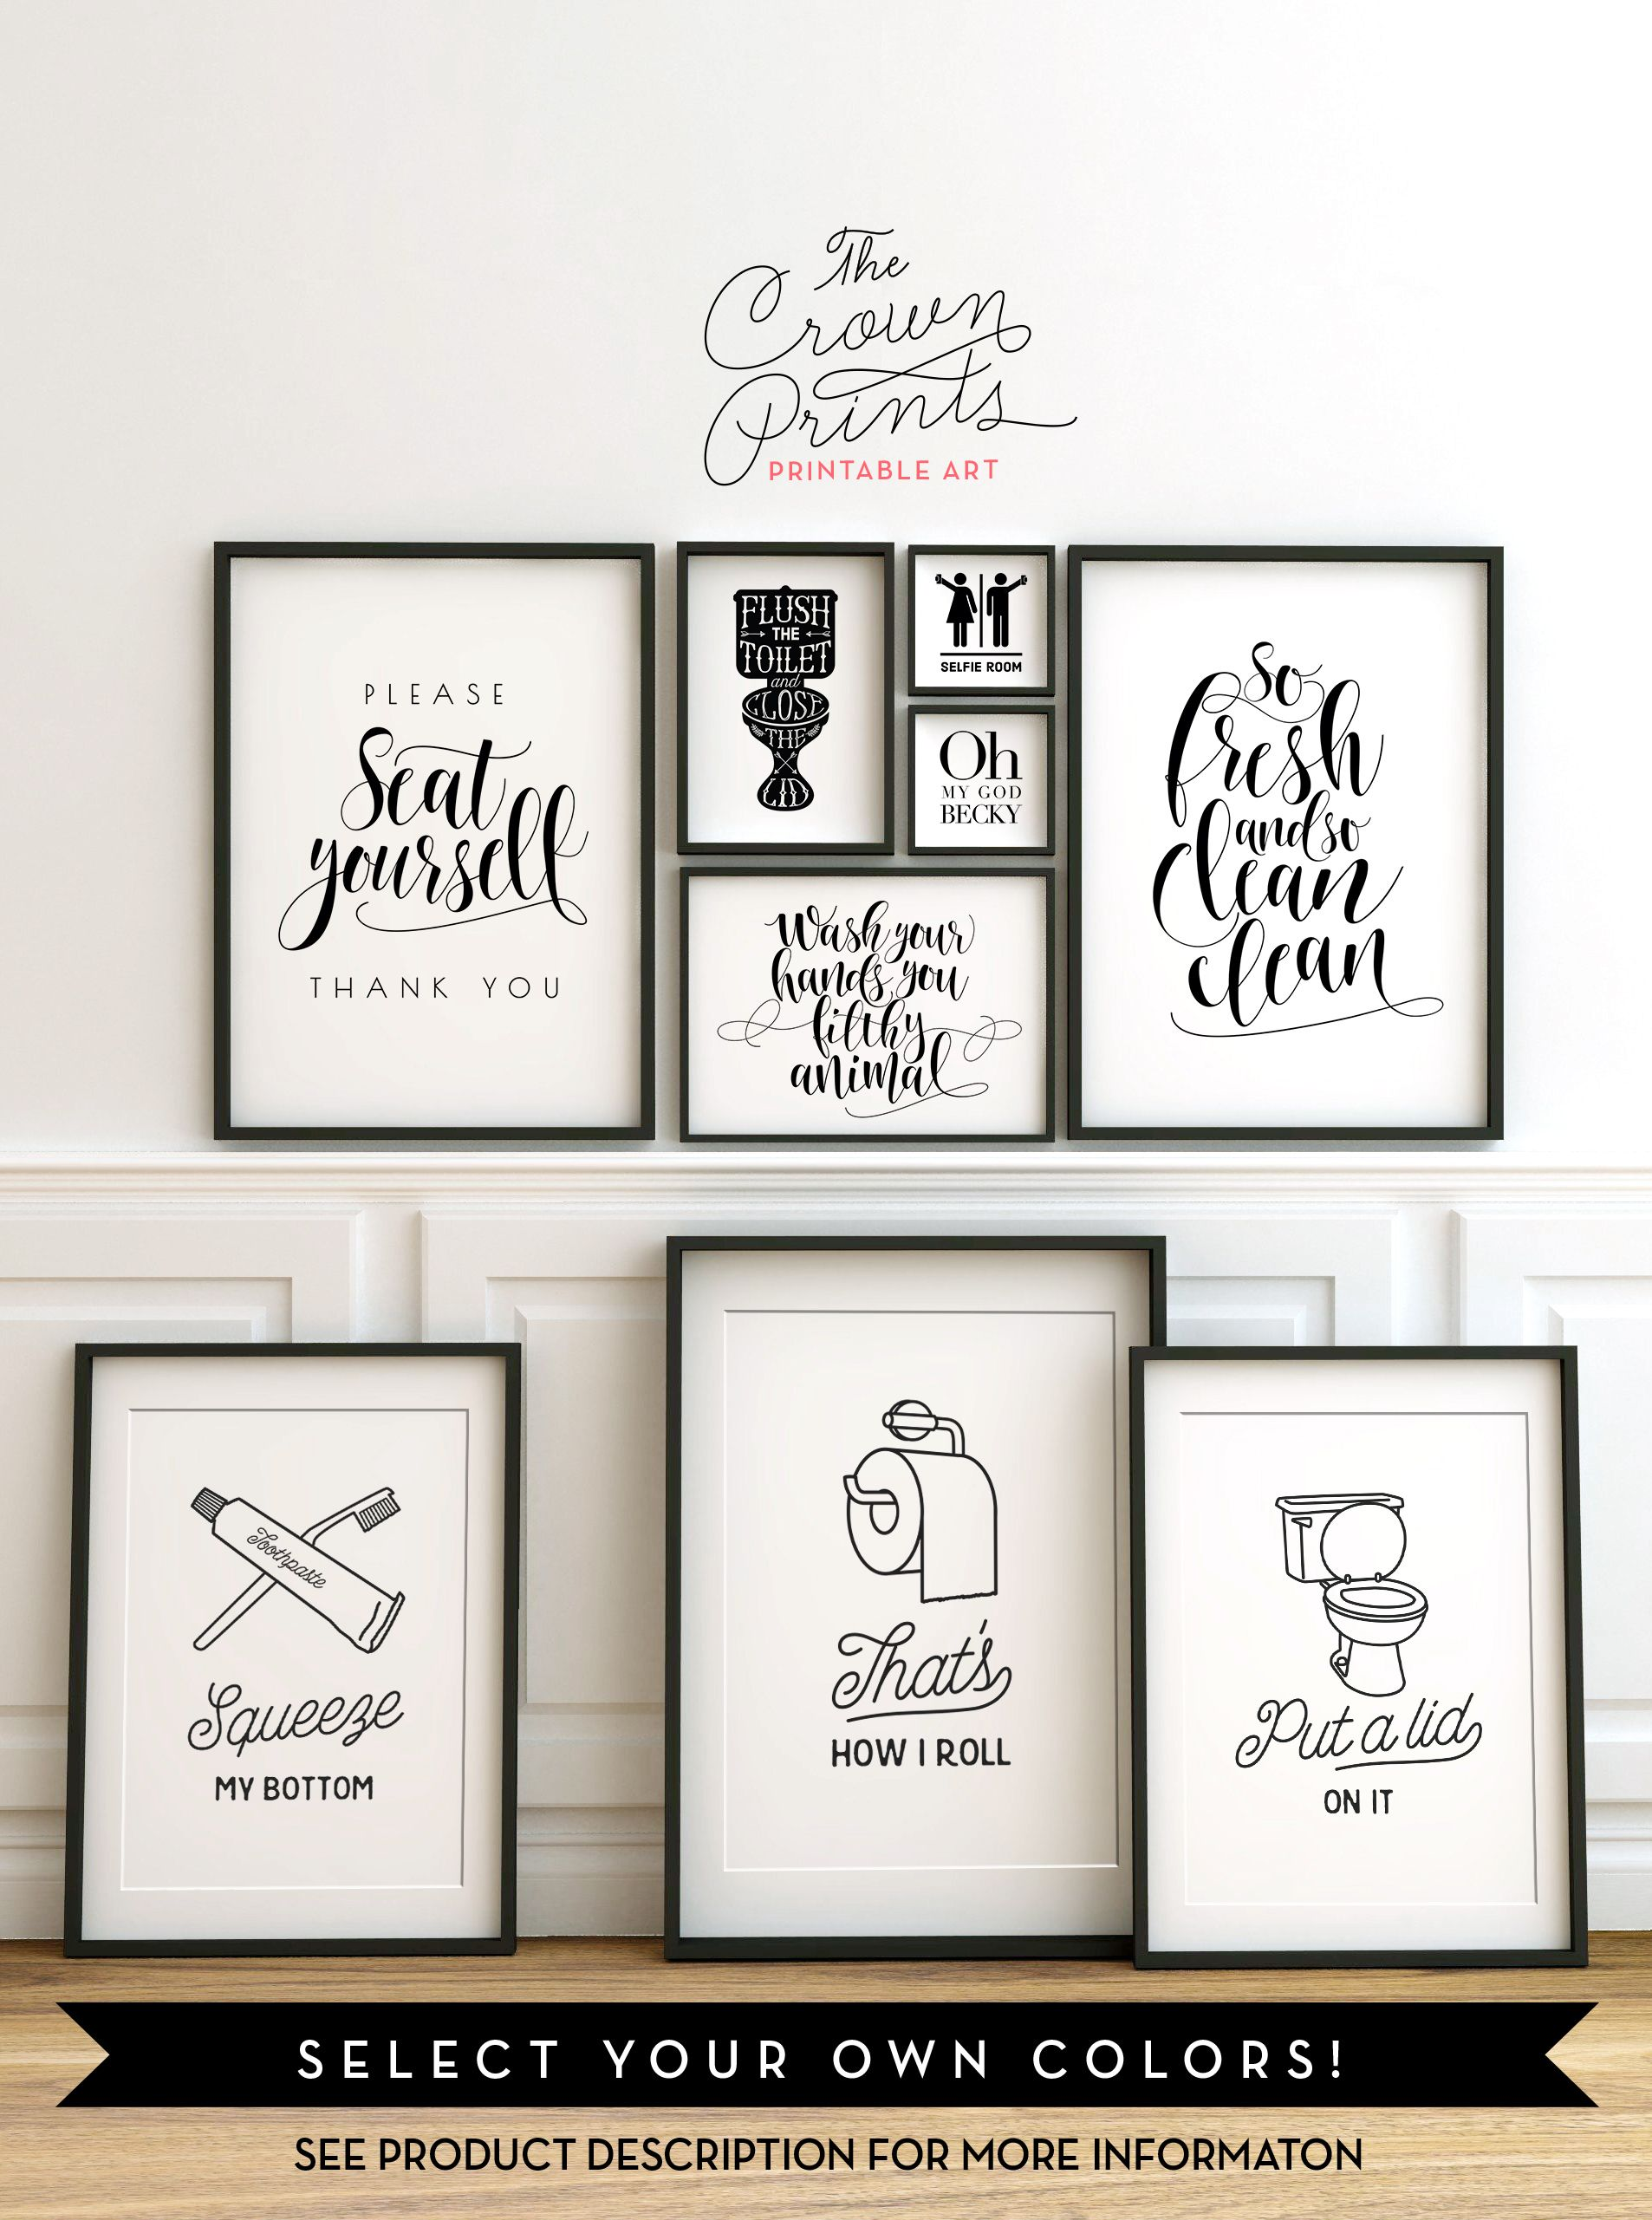 Printable Bathroom Wall Art From The Crown Prints On Etsy   Lots Of Funny  Quotes And Designs. Instant Bathroom Decor! Http://www.etsy.com/shop/ ...